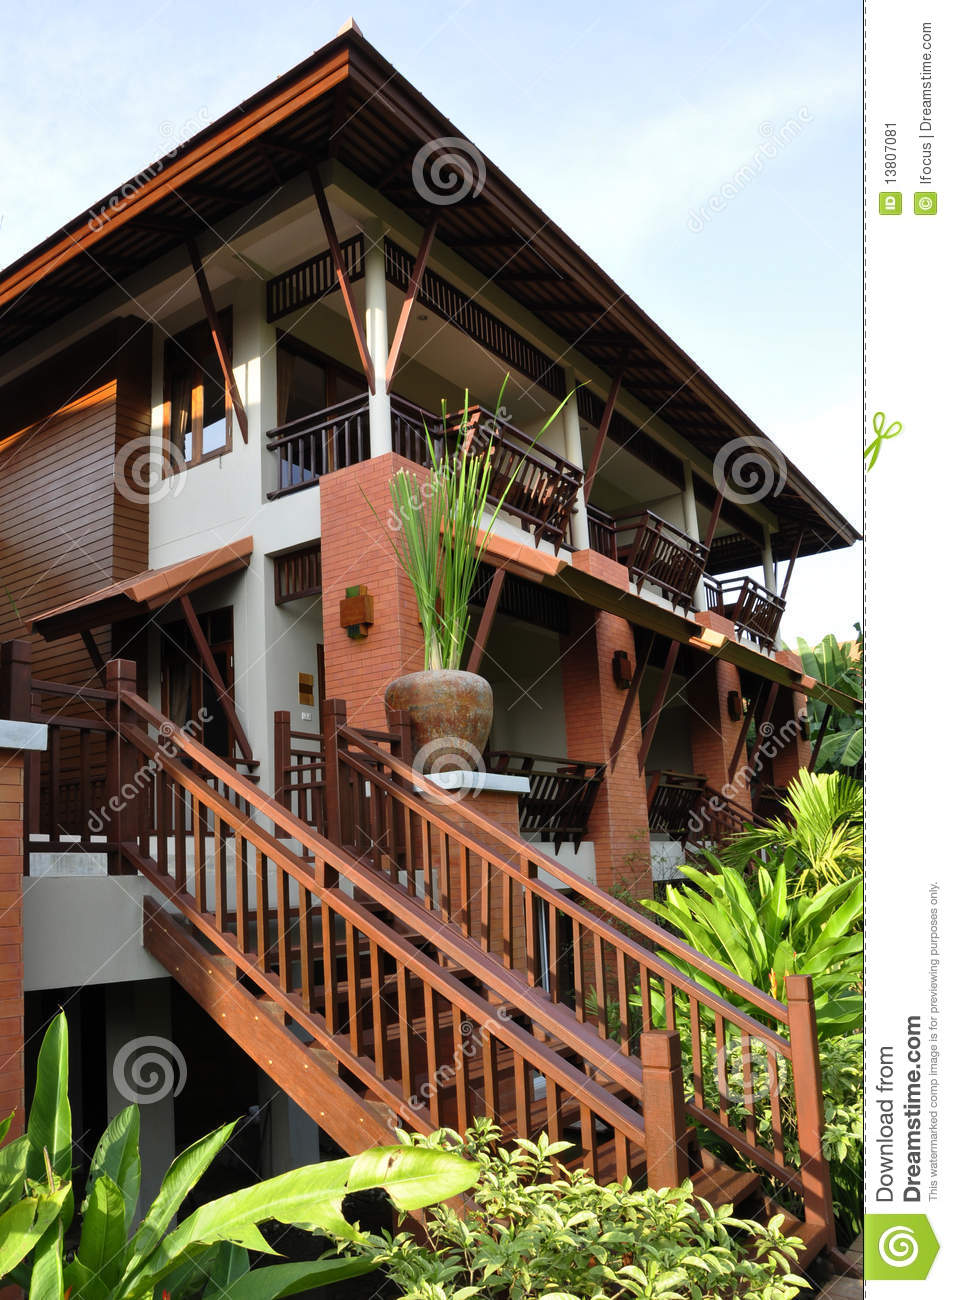 Modern thai house amongst vegetation stock image image for Modern thai house design